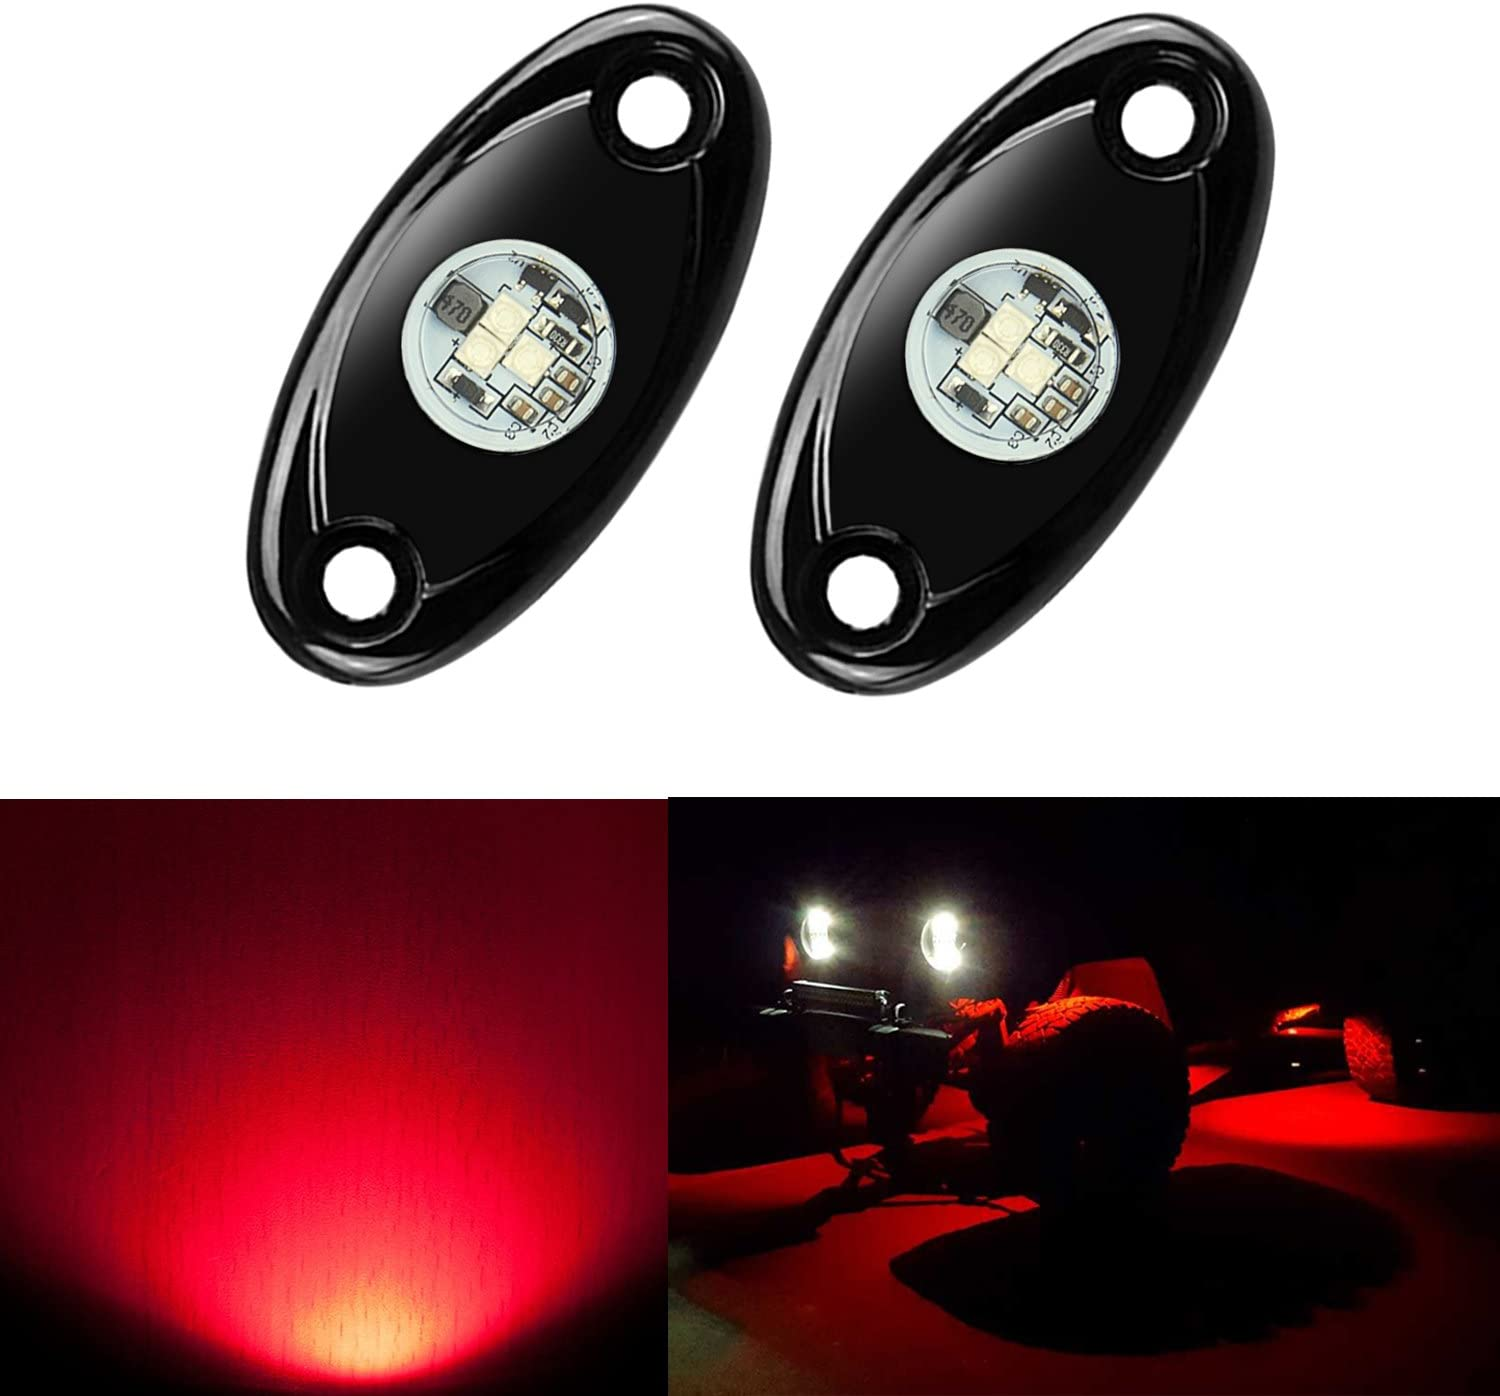 2 Pods LED Rock Lights, Ampper Waterproof LED Neon Underglow Light for Car Truck ATV UTV SUV Jeep Offroad Boat Underbody Glow Trail Rig Lamp (Red): Automotive